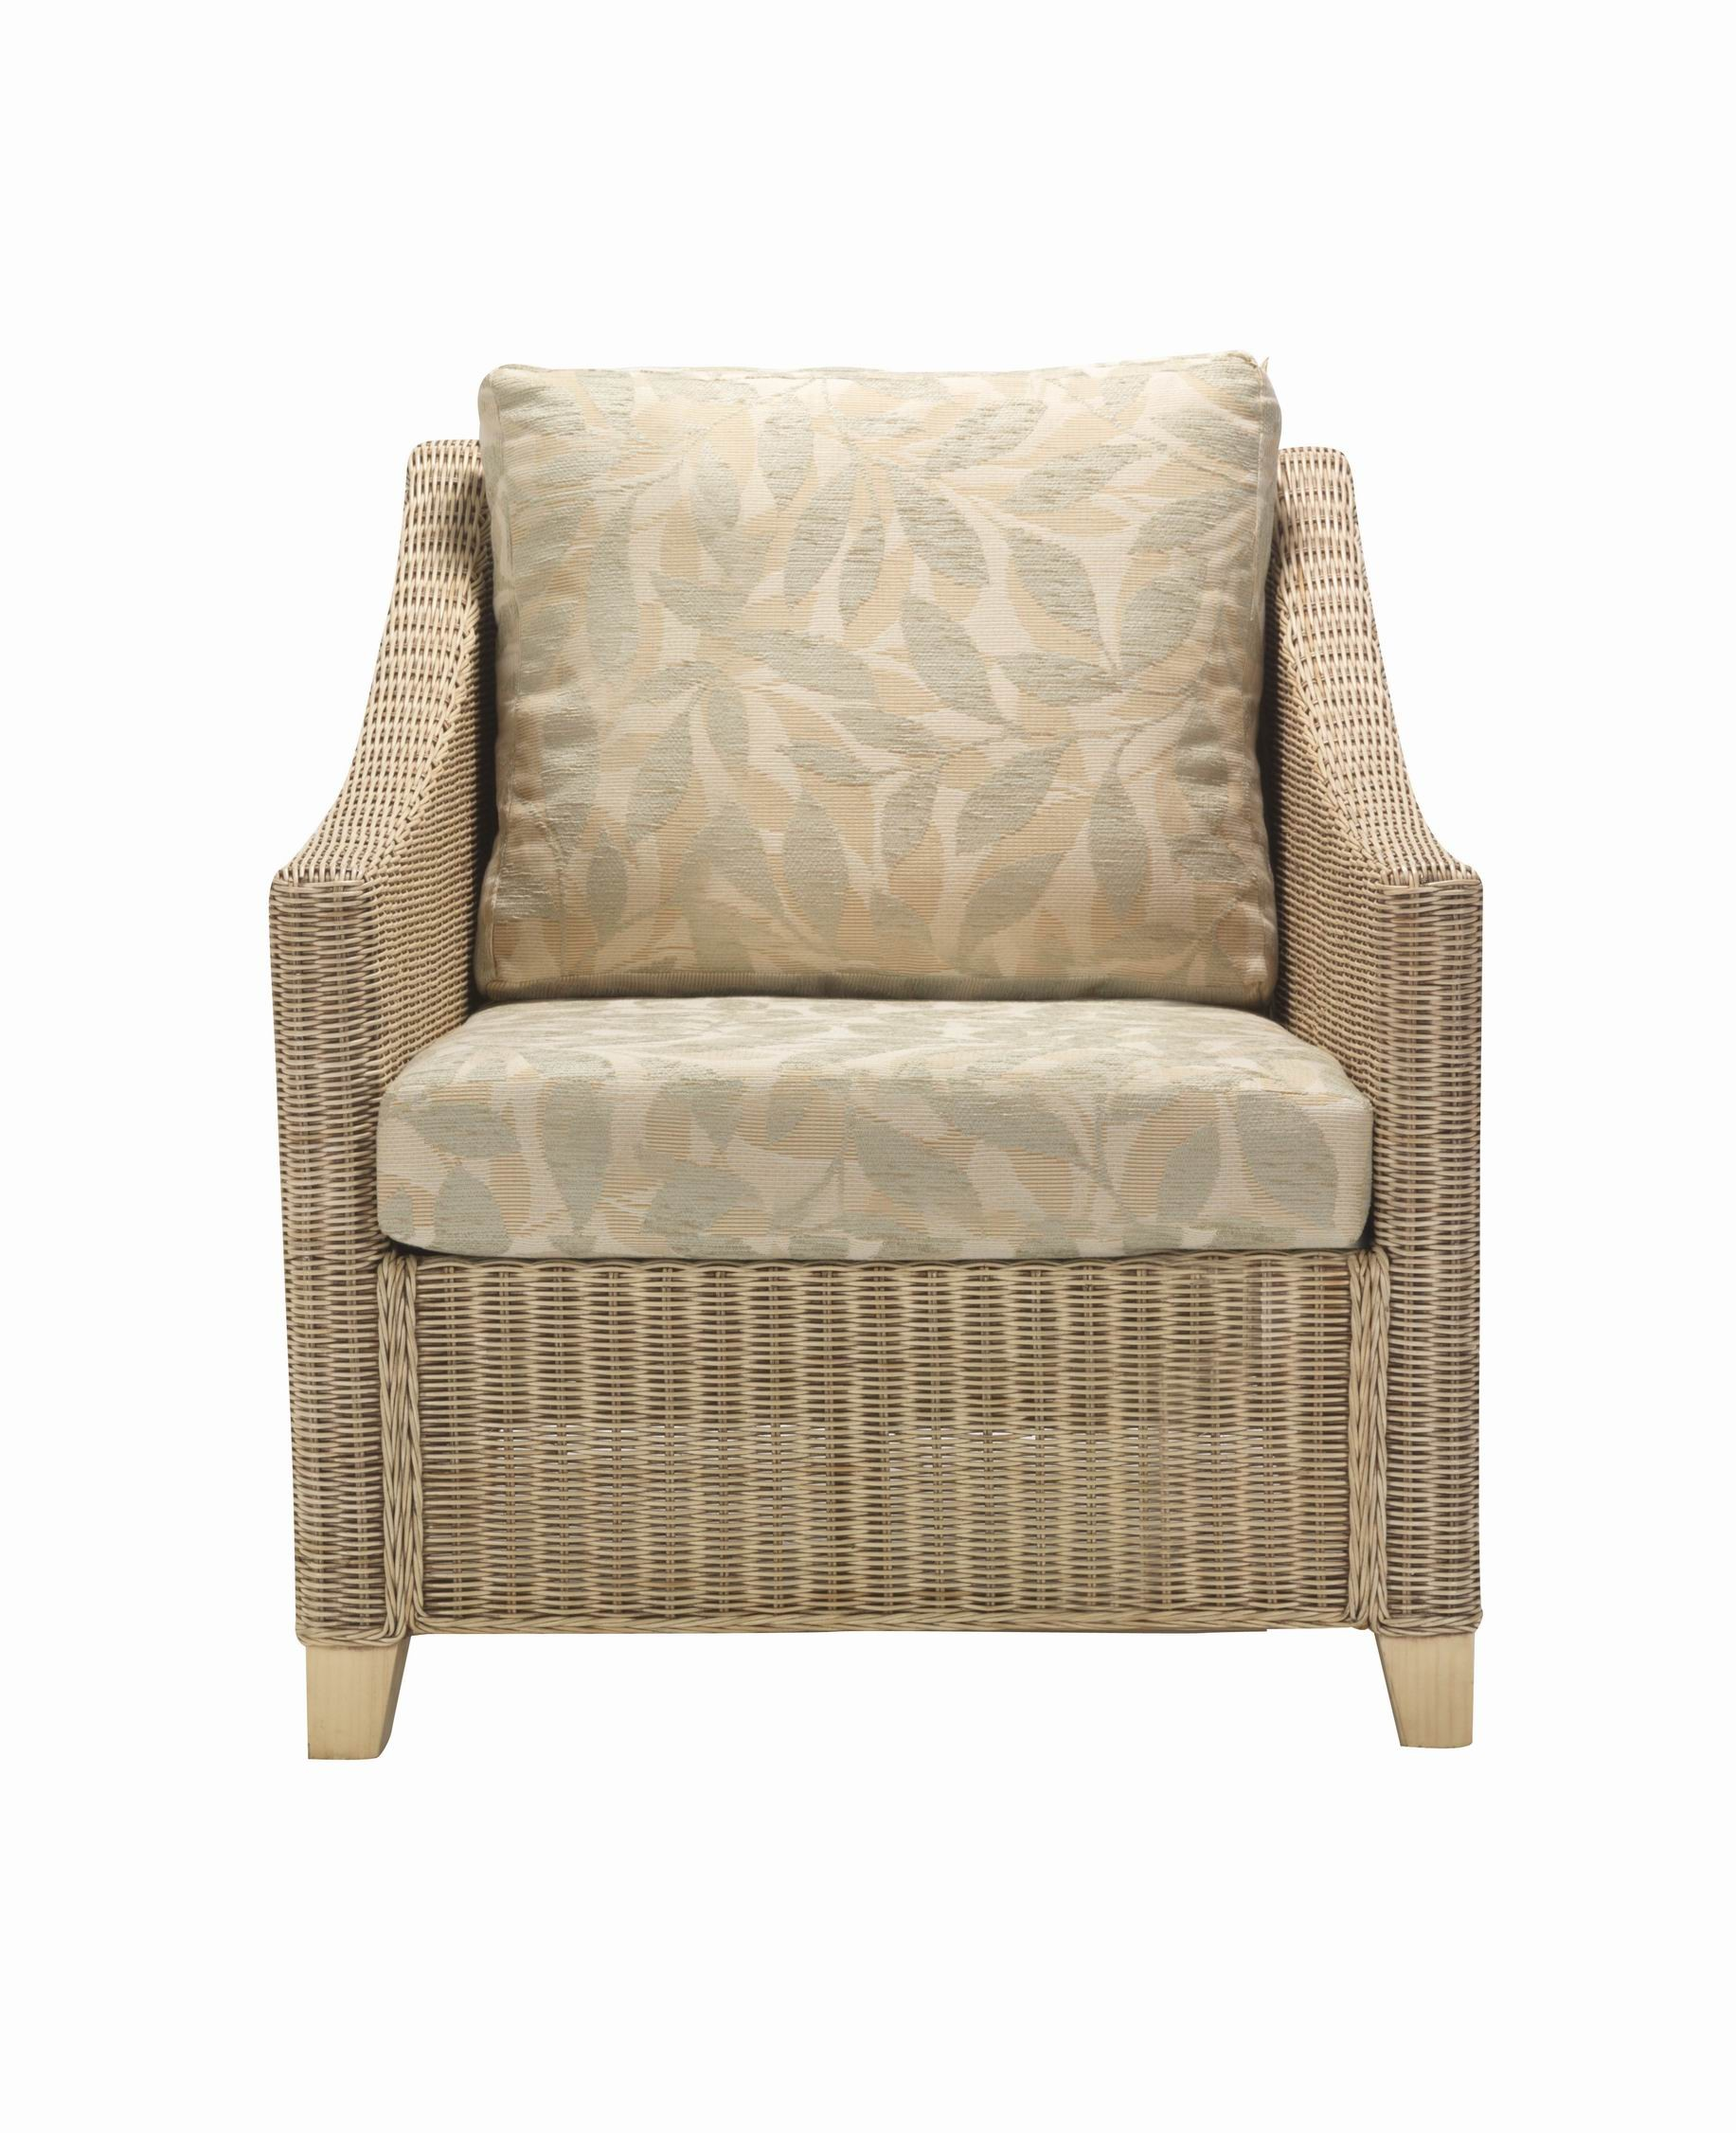 Desser Dijon Armchair and Cushion